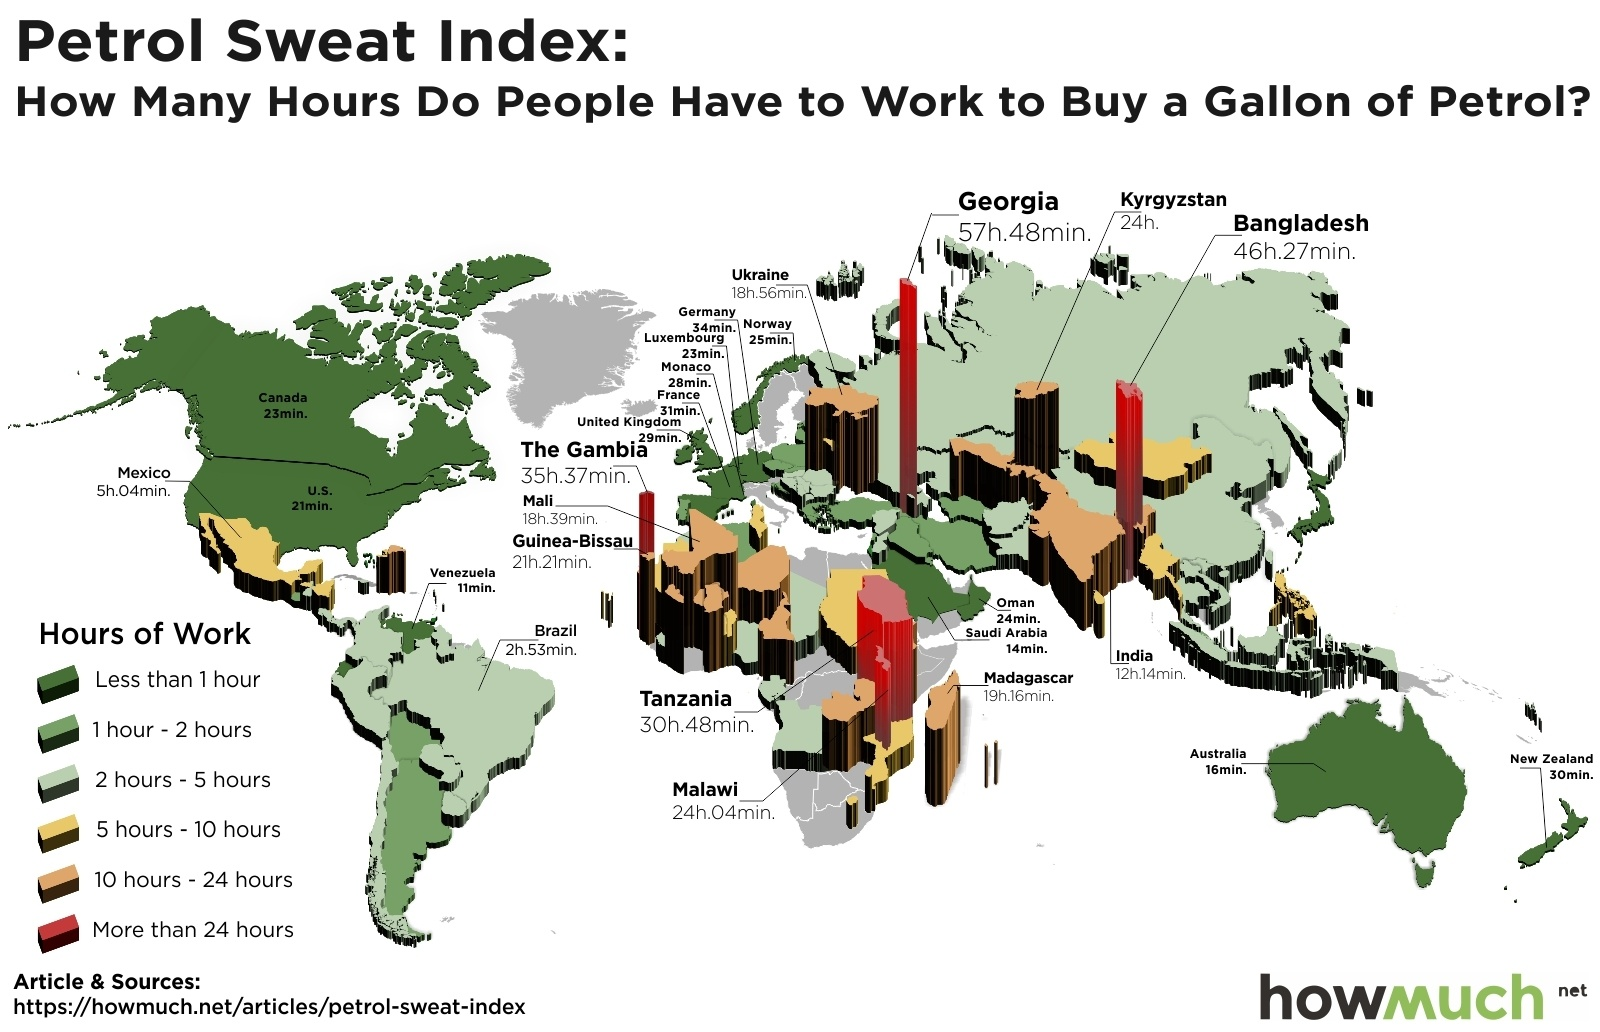 Petrol sweat index